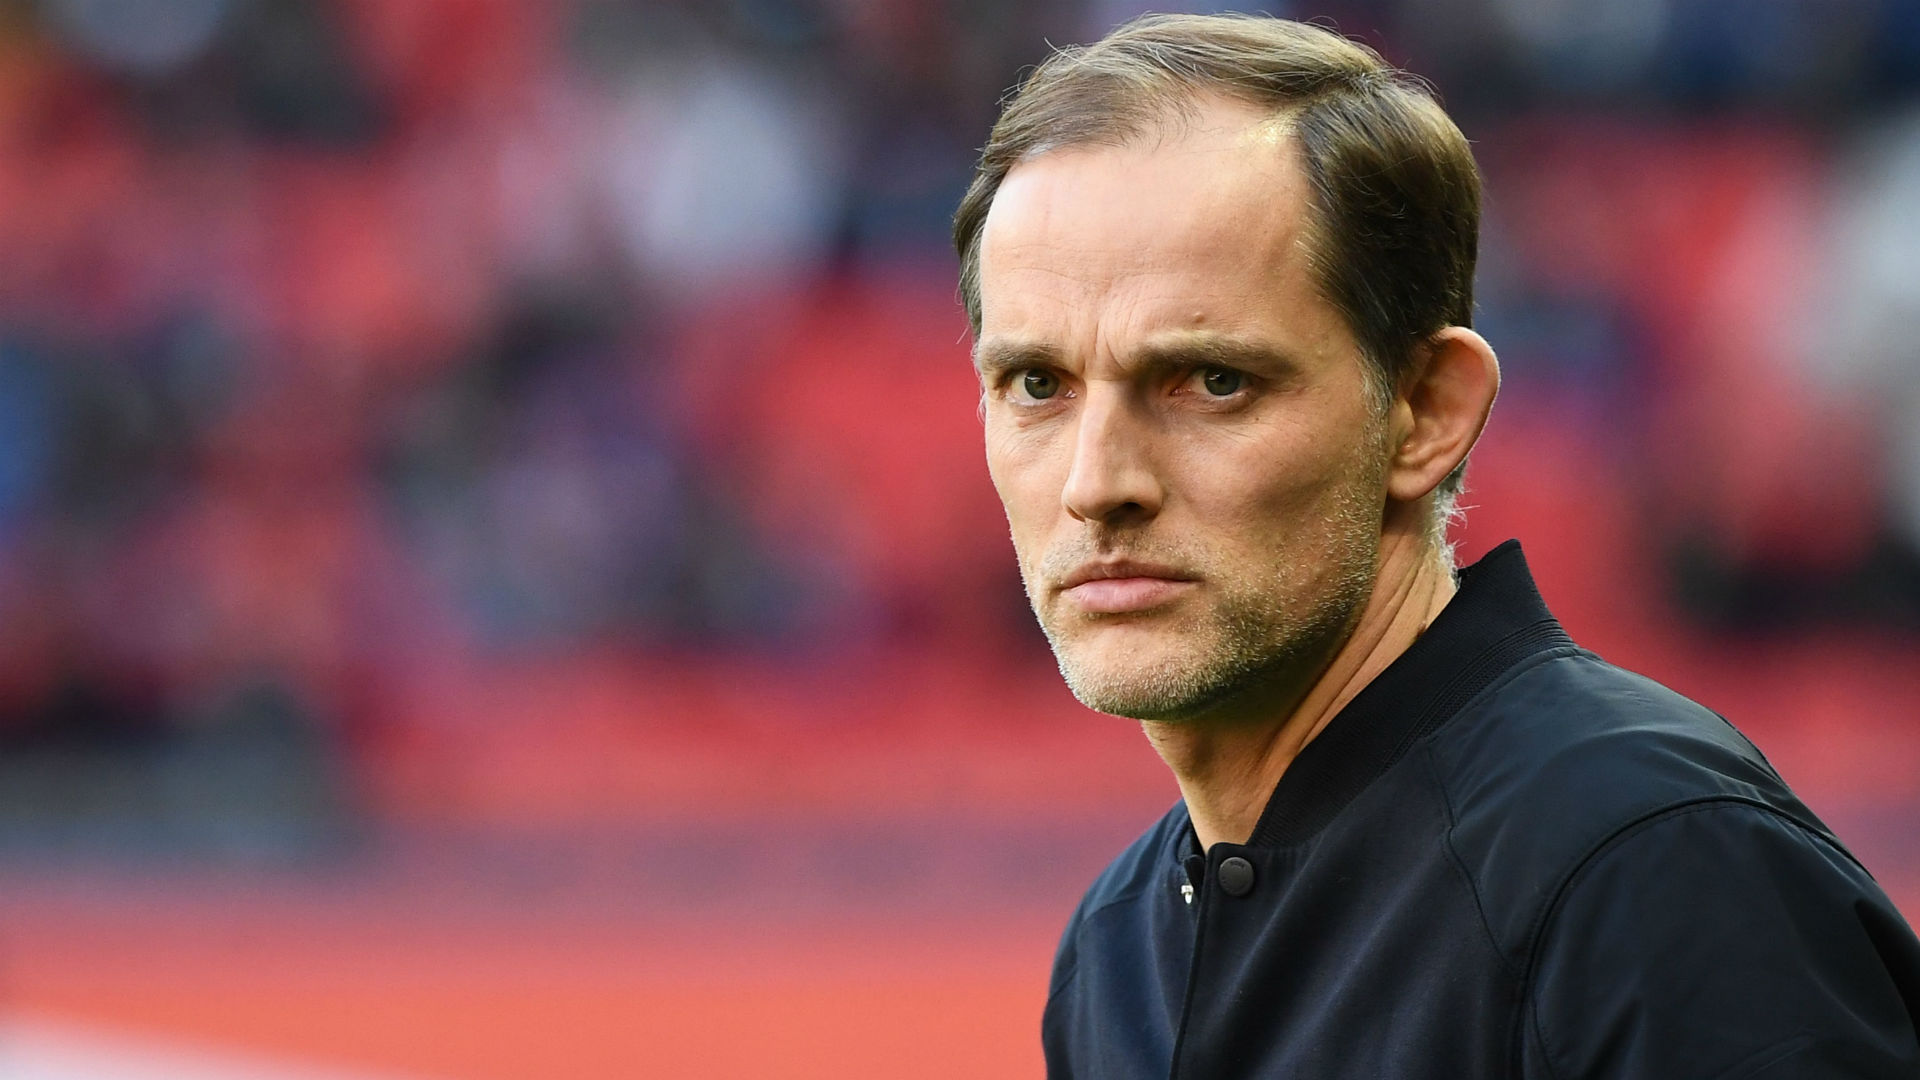 Tuchel: Not everybody likes me in the dressing room, that's just not possible